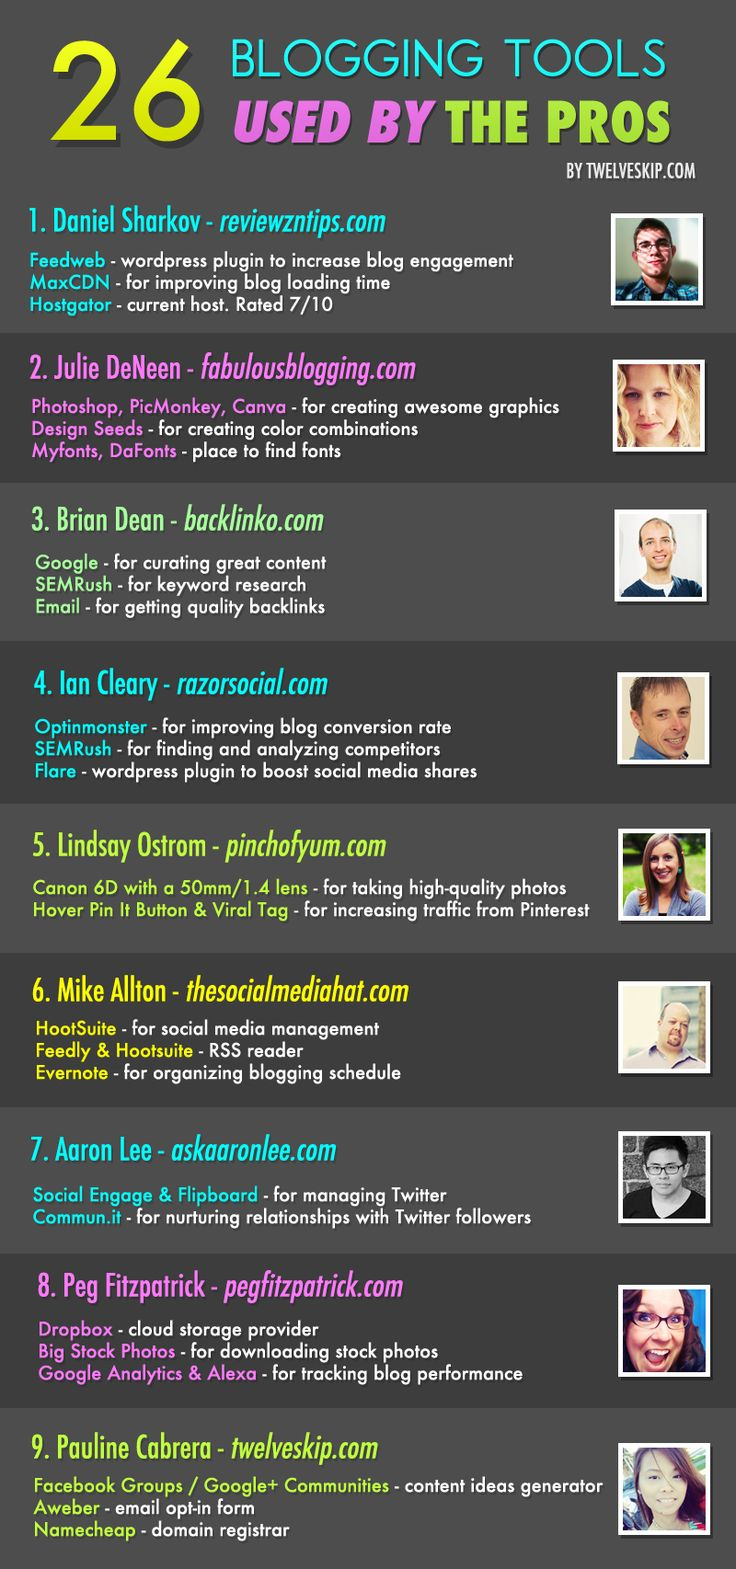 Blogging Tools Loved By The Pros @ http://www.twelveskip.com/guide/blogging/1257/blogging-tools-used-by-the-pros